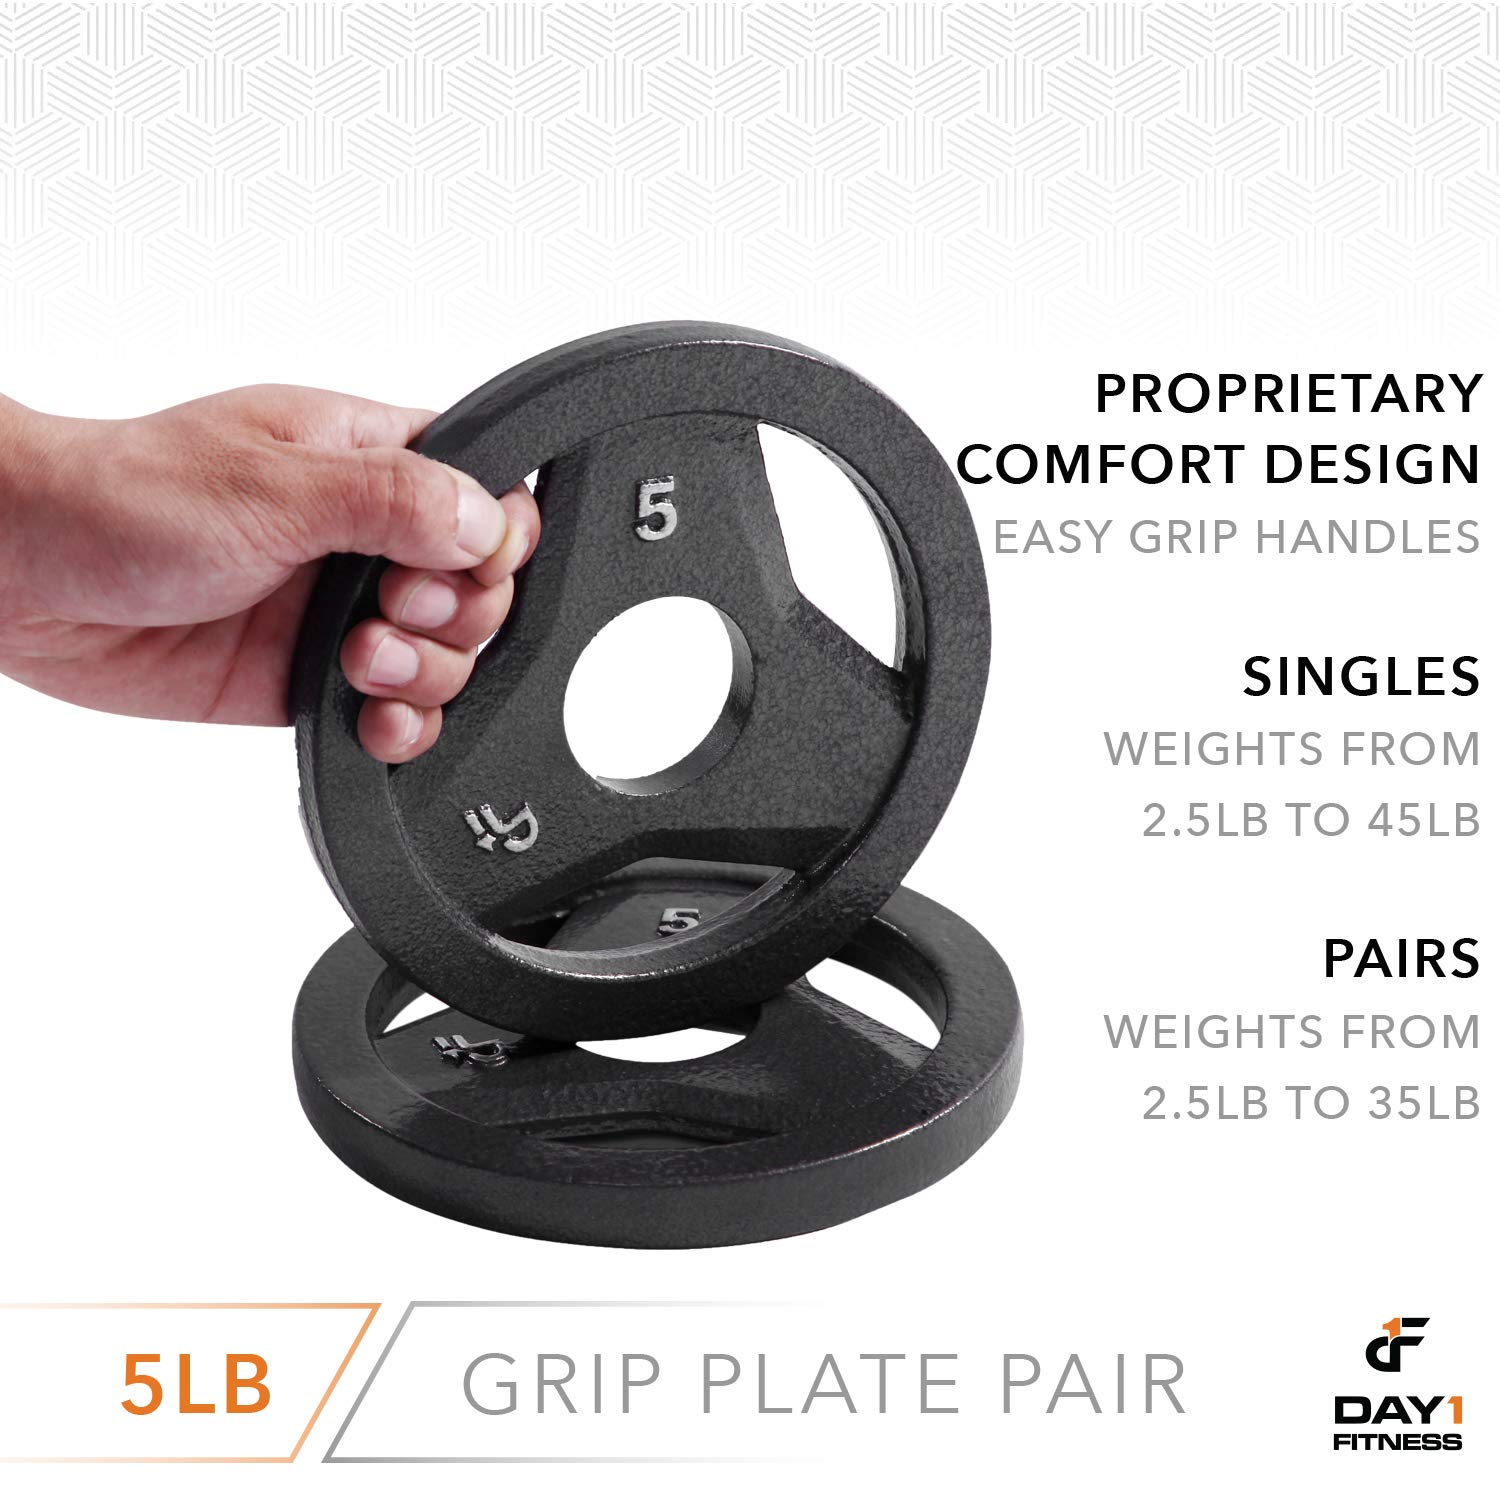 "Day 1 Fitness Cast Iron Olympic 2-Inch Grip Plate for Barbell, 5 Pound Set of 2 Plates Iron Grip Plates for Weightlifting, Crossfit - 2"" Weight Plate for Bodybuilding by Day 1 Fitness (Image #5)"